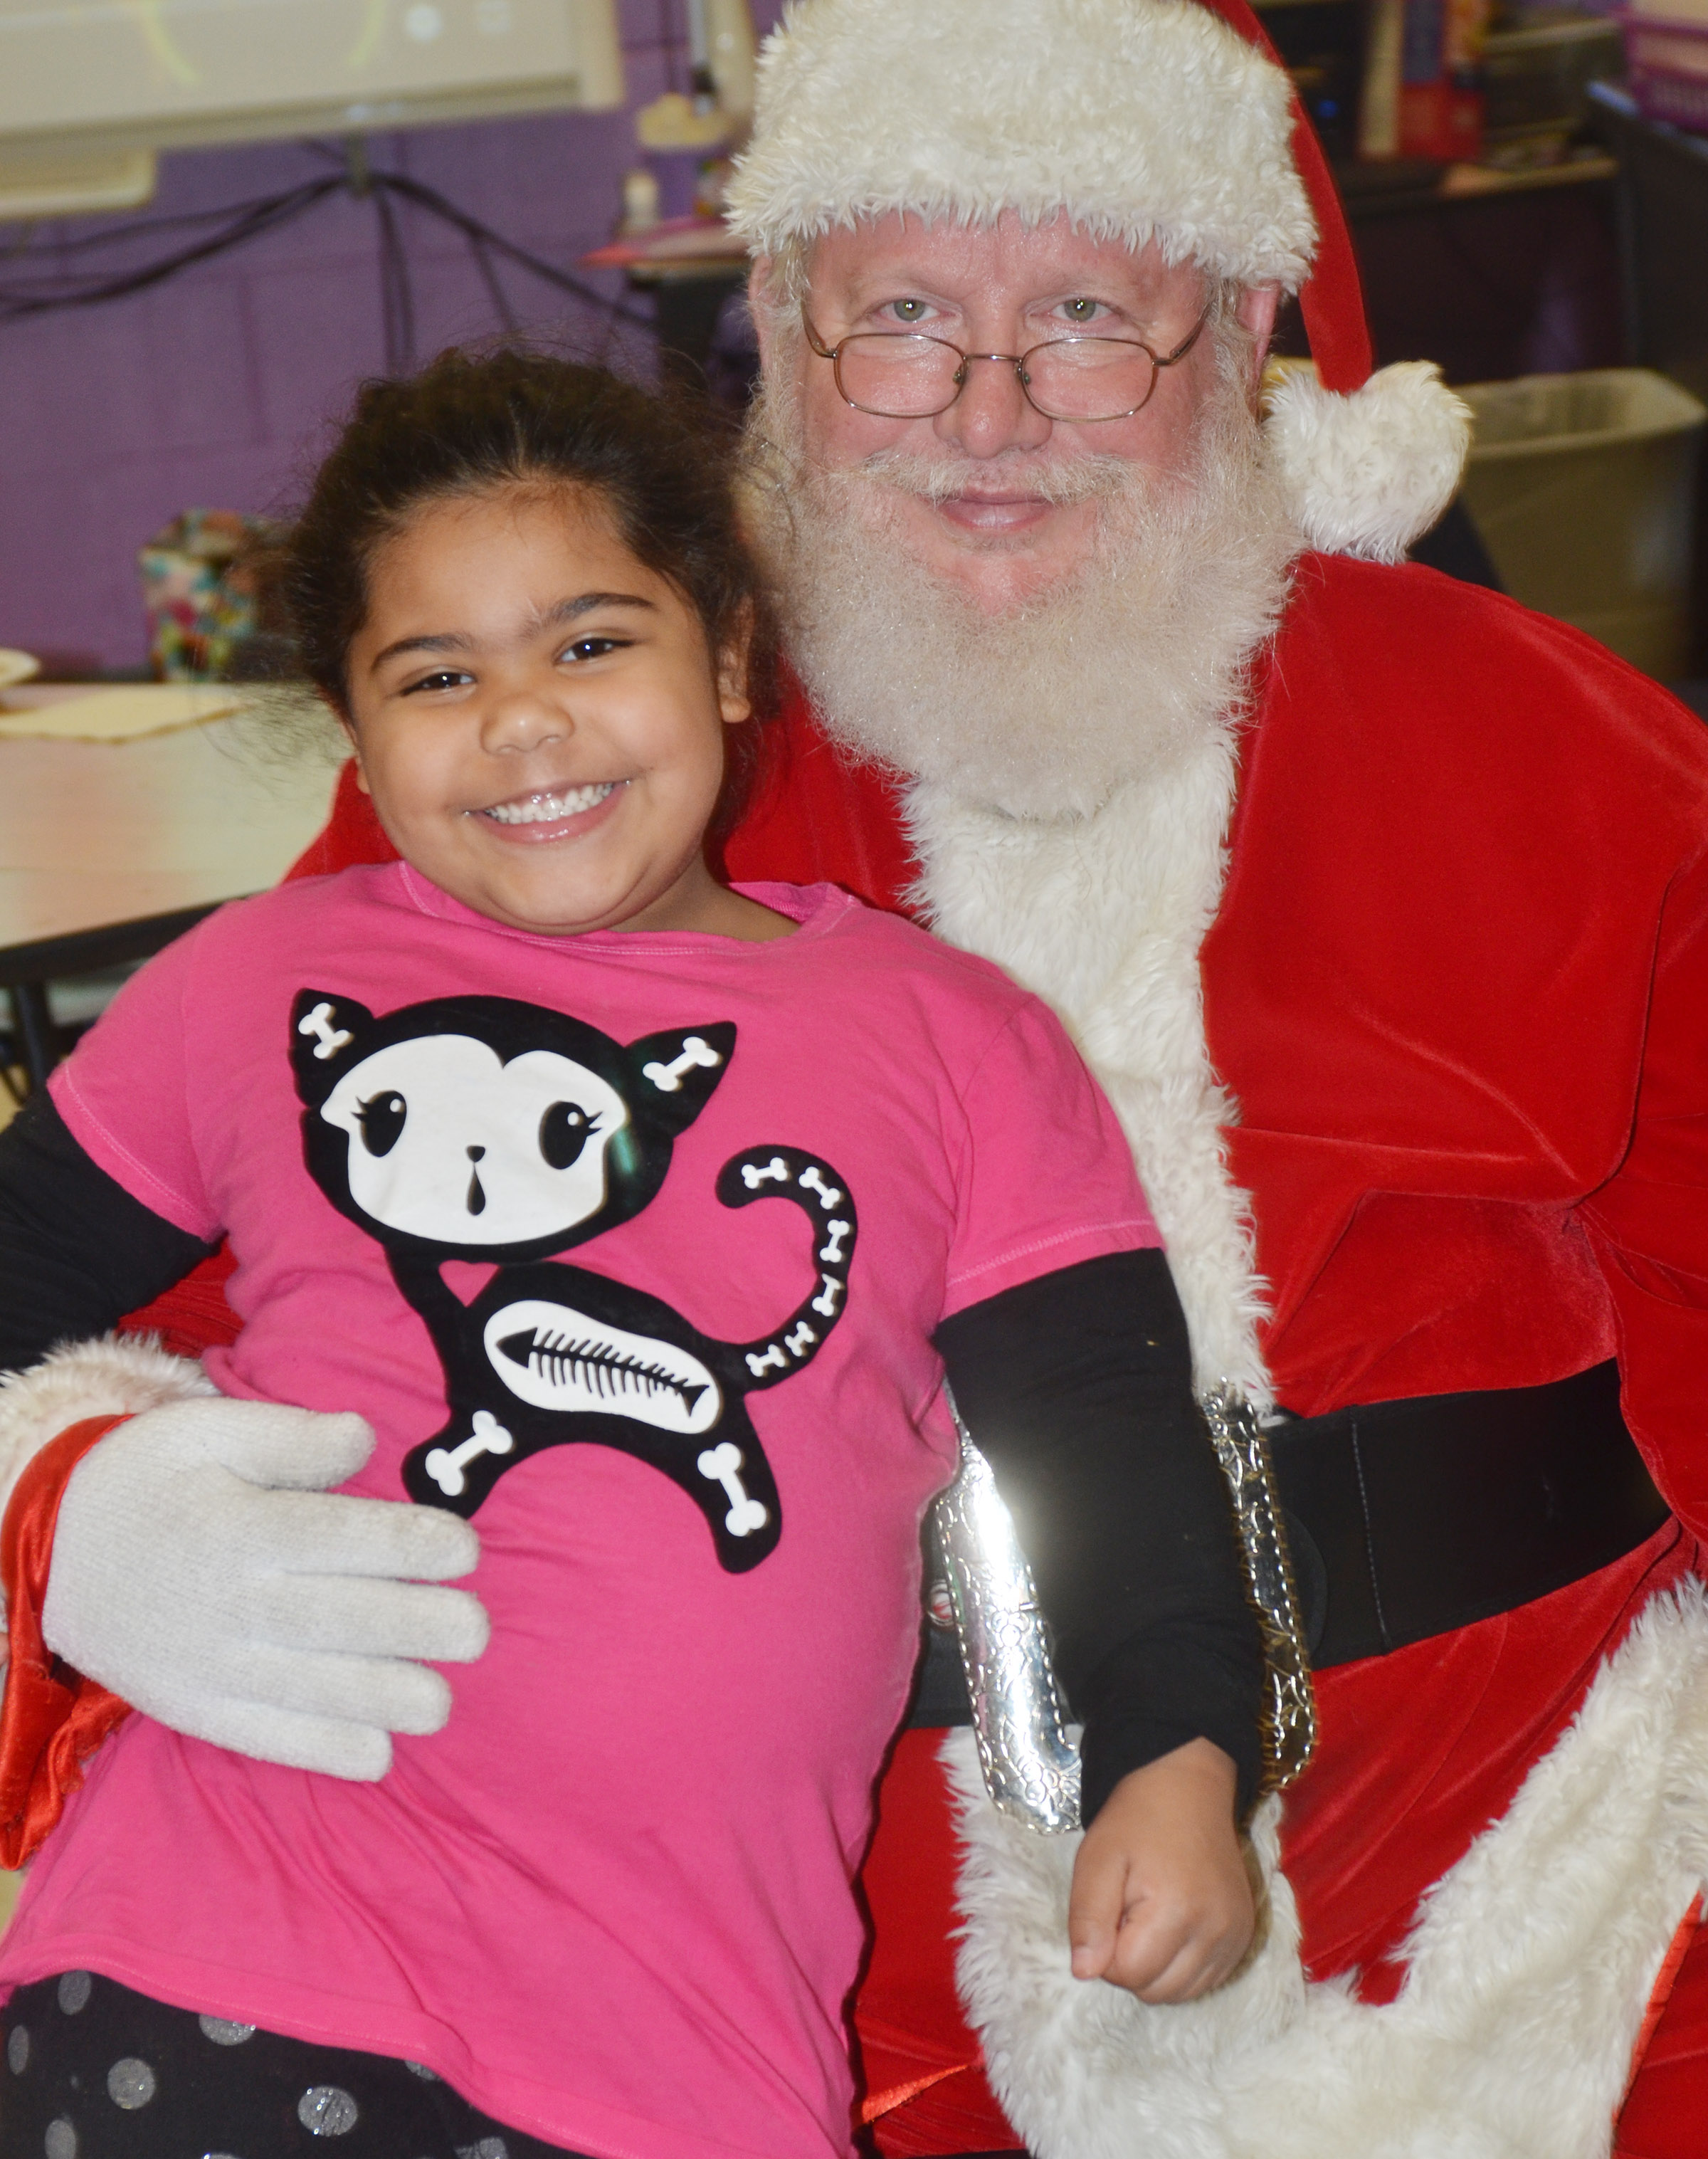 CES kindergartener Linnly Adams poses for a photo with Santa.